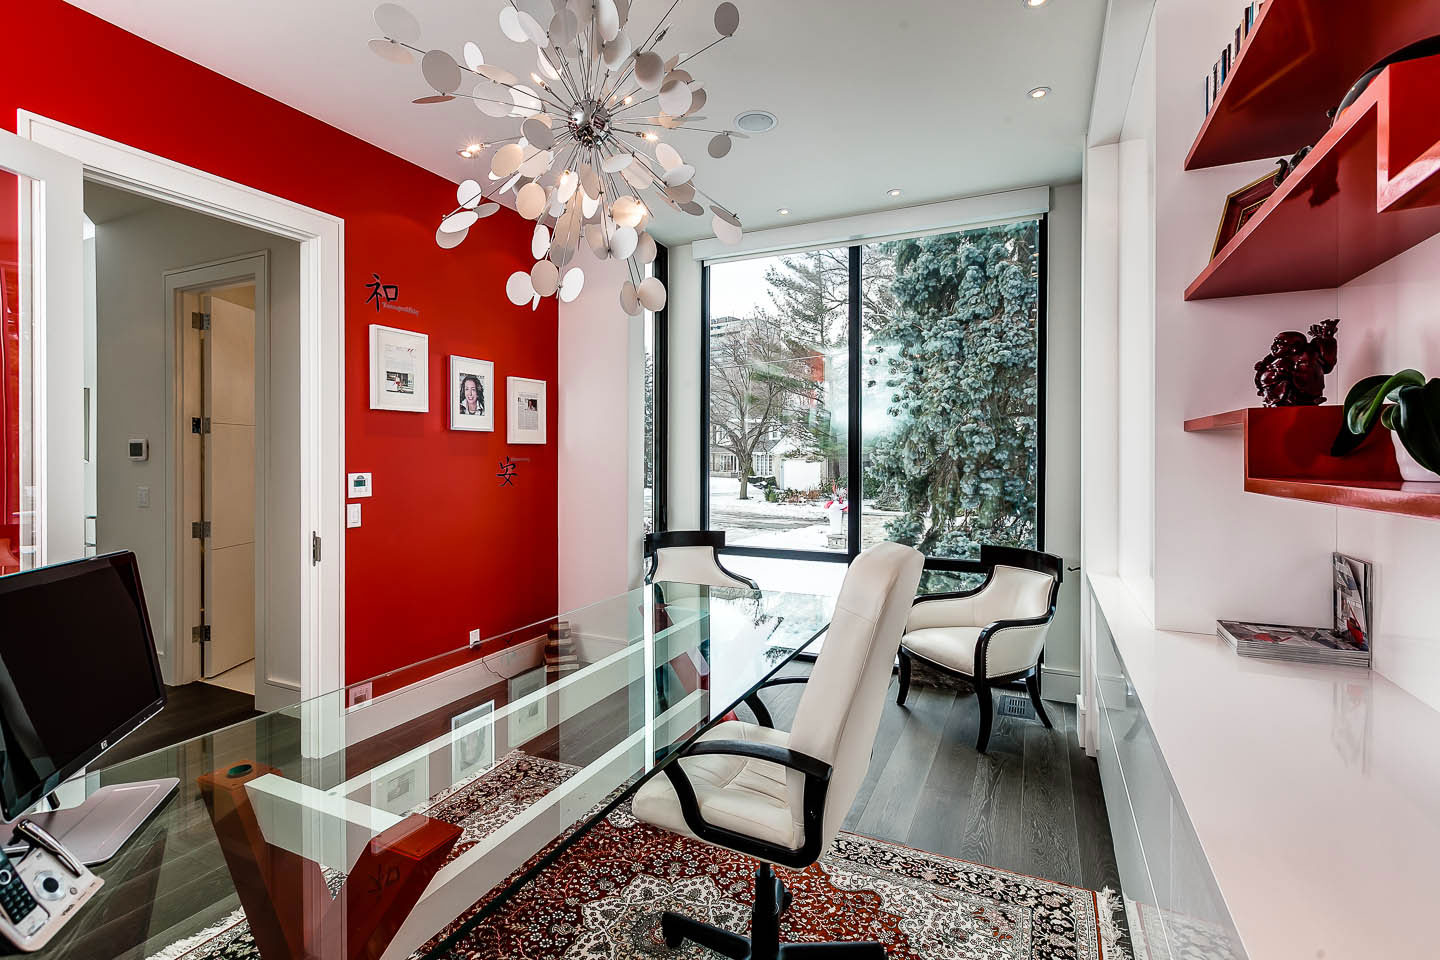 Home Office, Red & White Walls, Contemporary House in Toronto, Canada